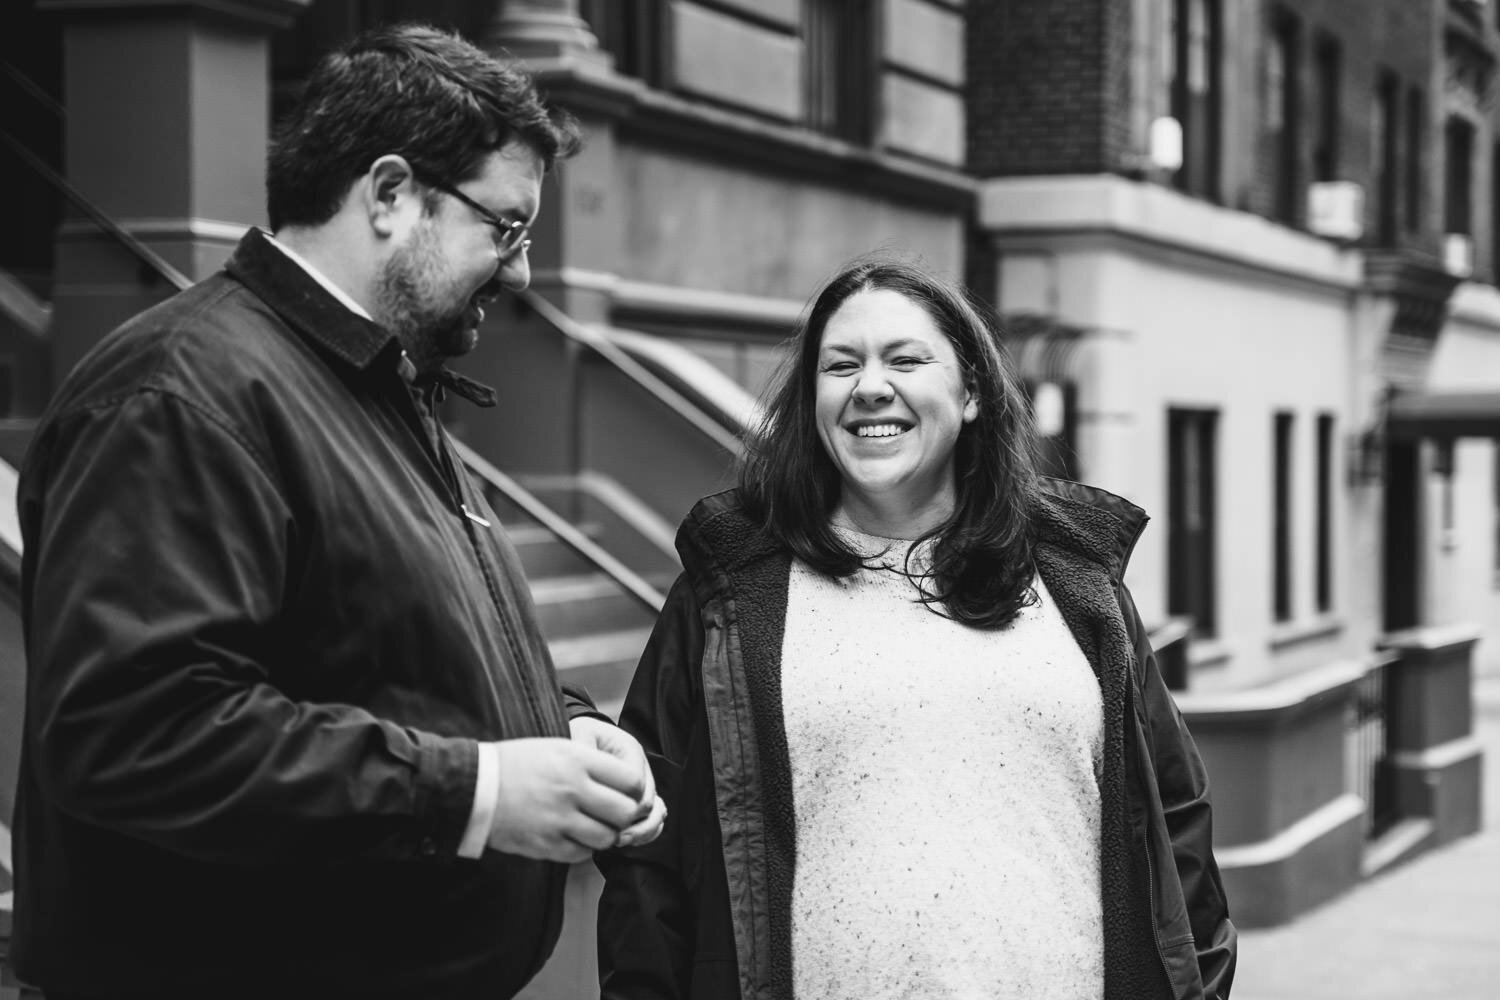 A couple smiles at each other on the street in Manhattan.